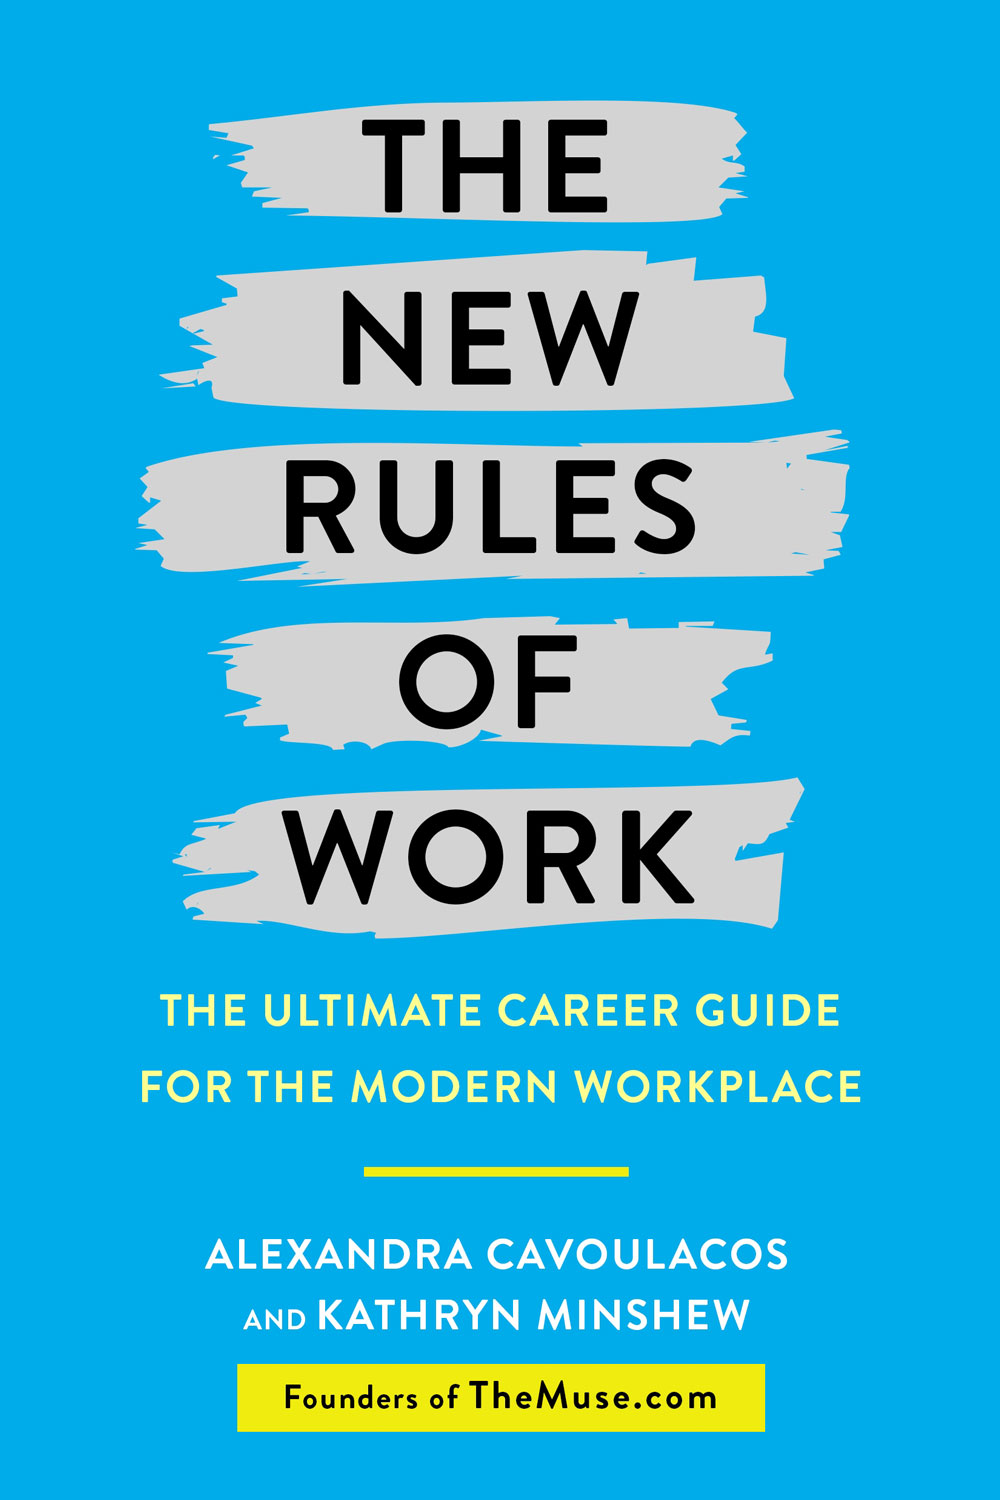 The-Gloss-Magazine-Look-The-Business-New-Rules-of-Work-book